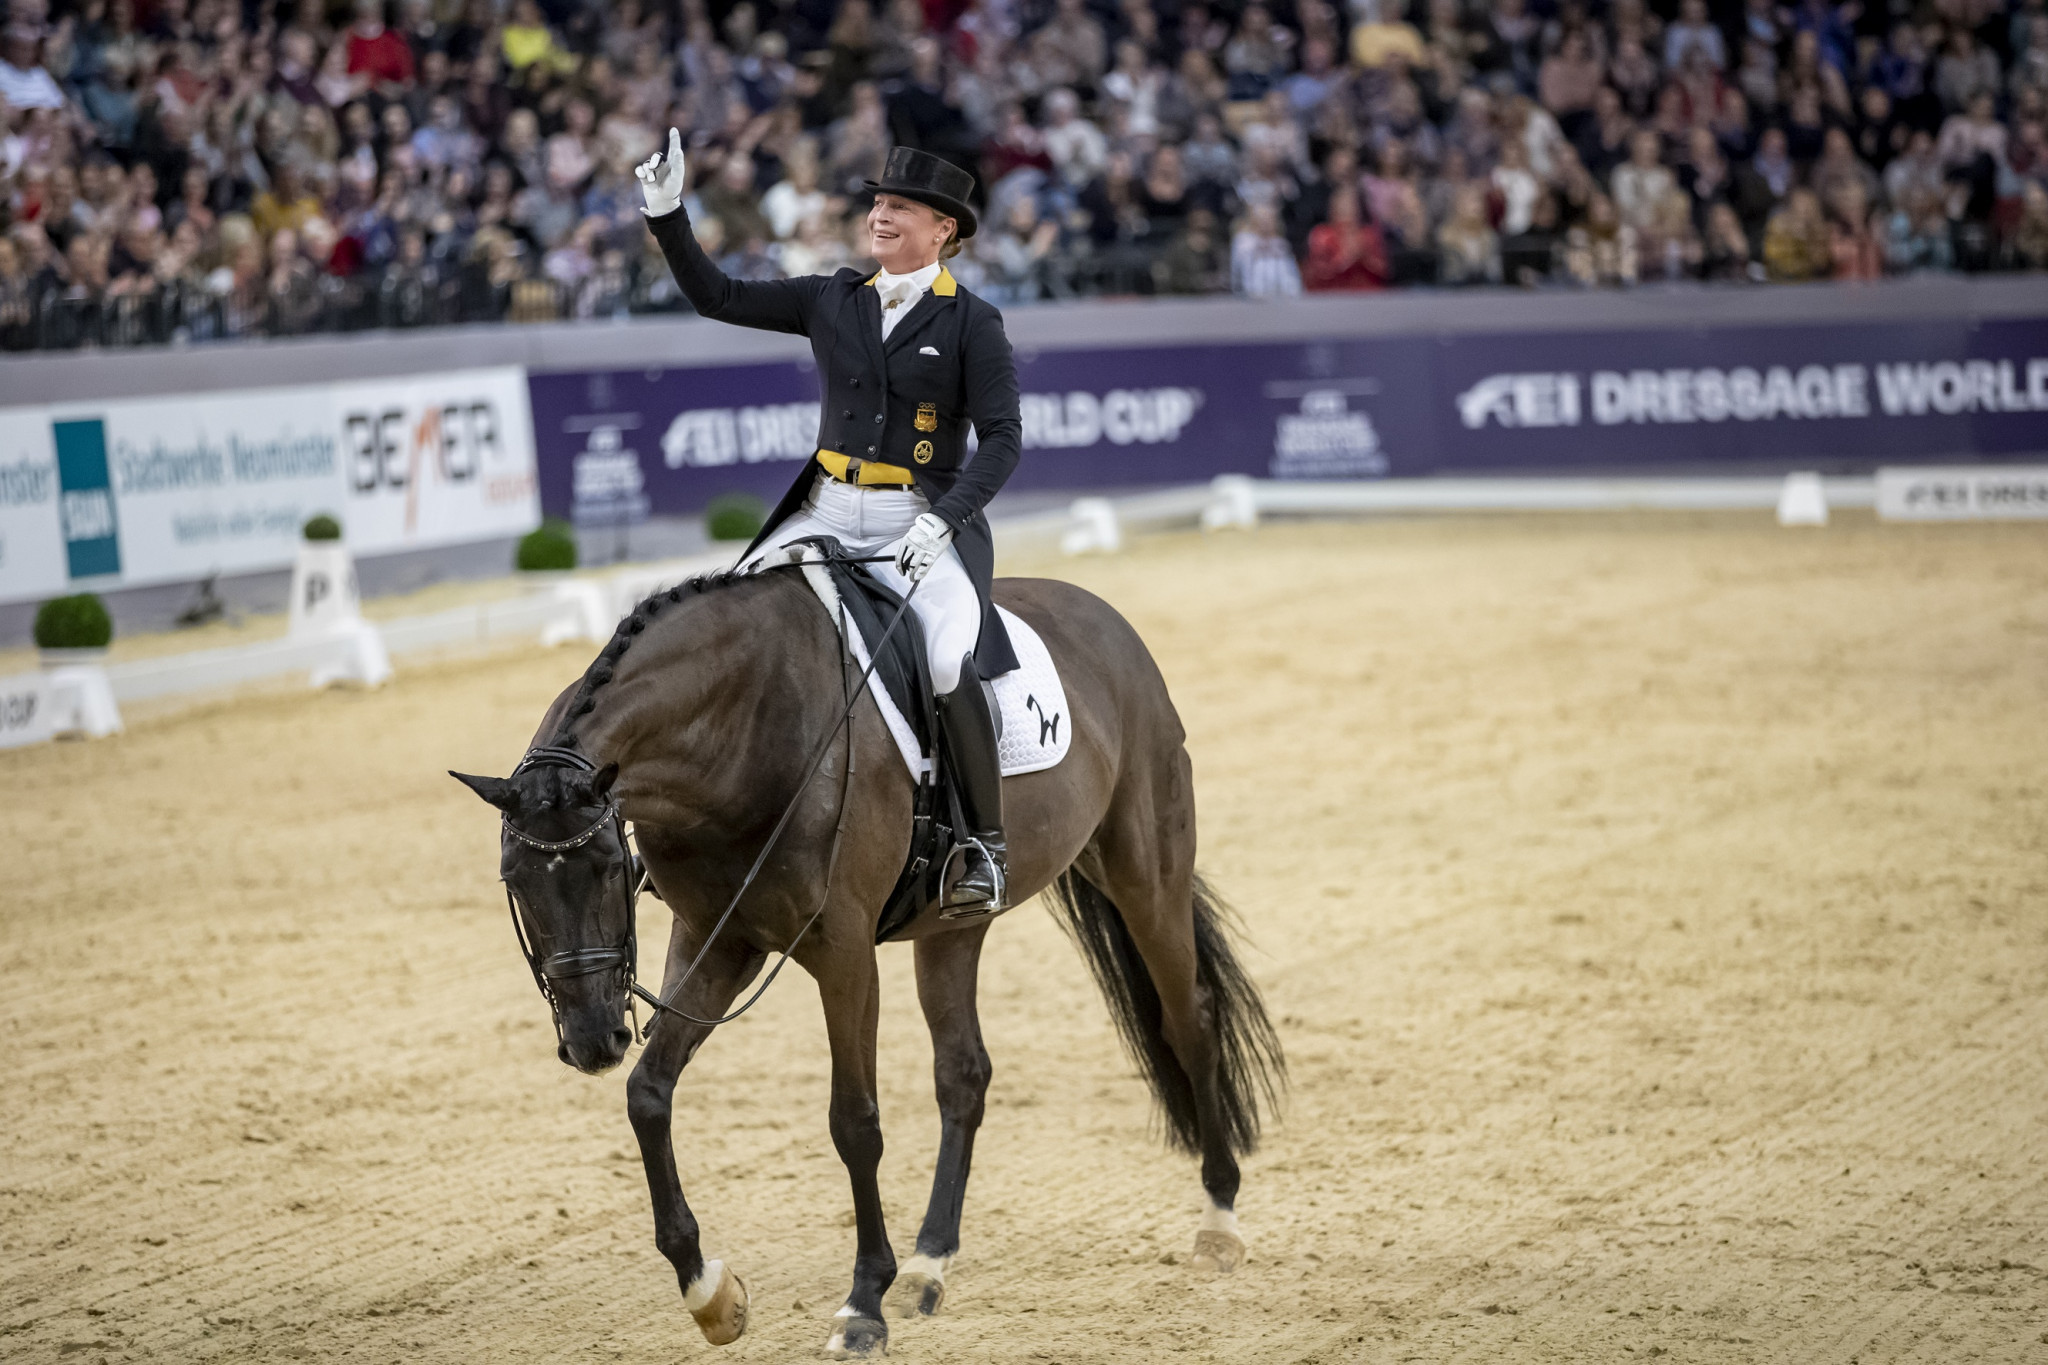 Werth wins again at FEI Dressage World Cup in Neumünster